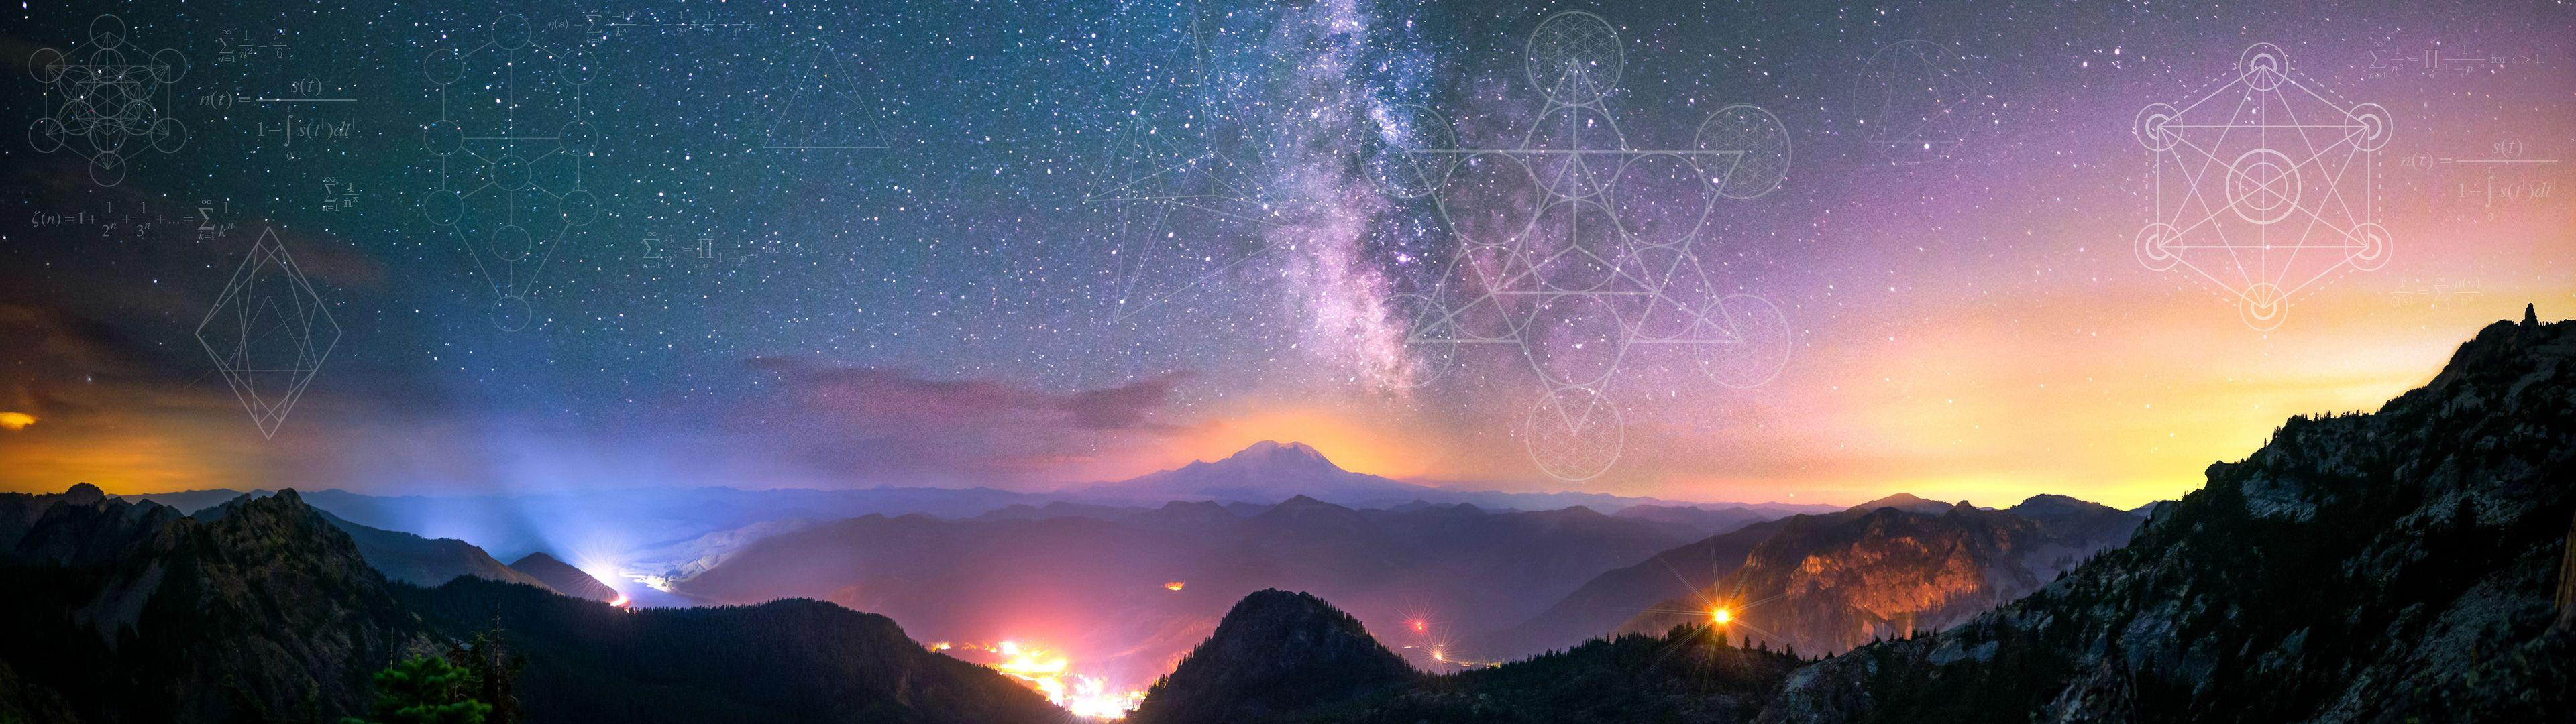 Sacred geometry and space wallpapers (part1) - Album on Imgur